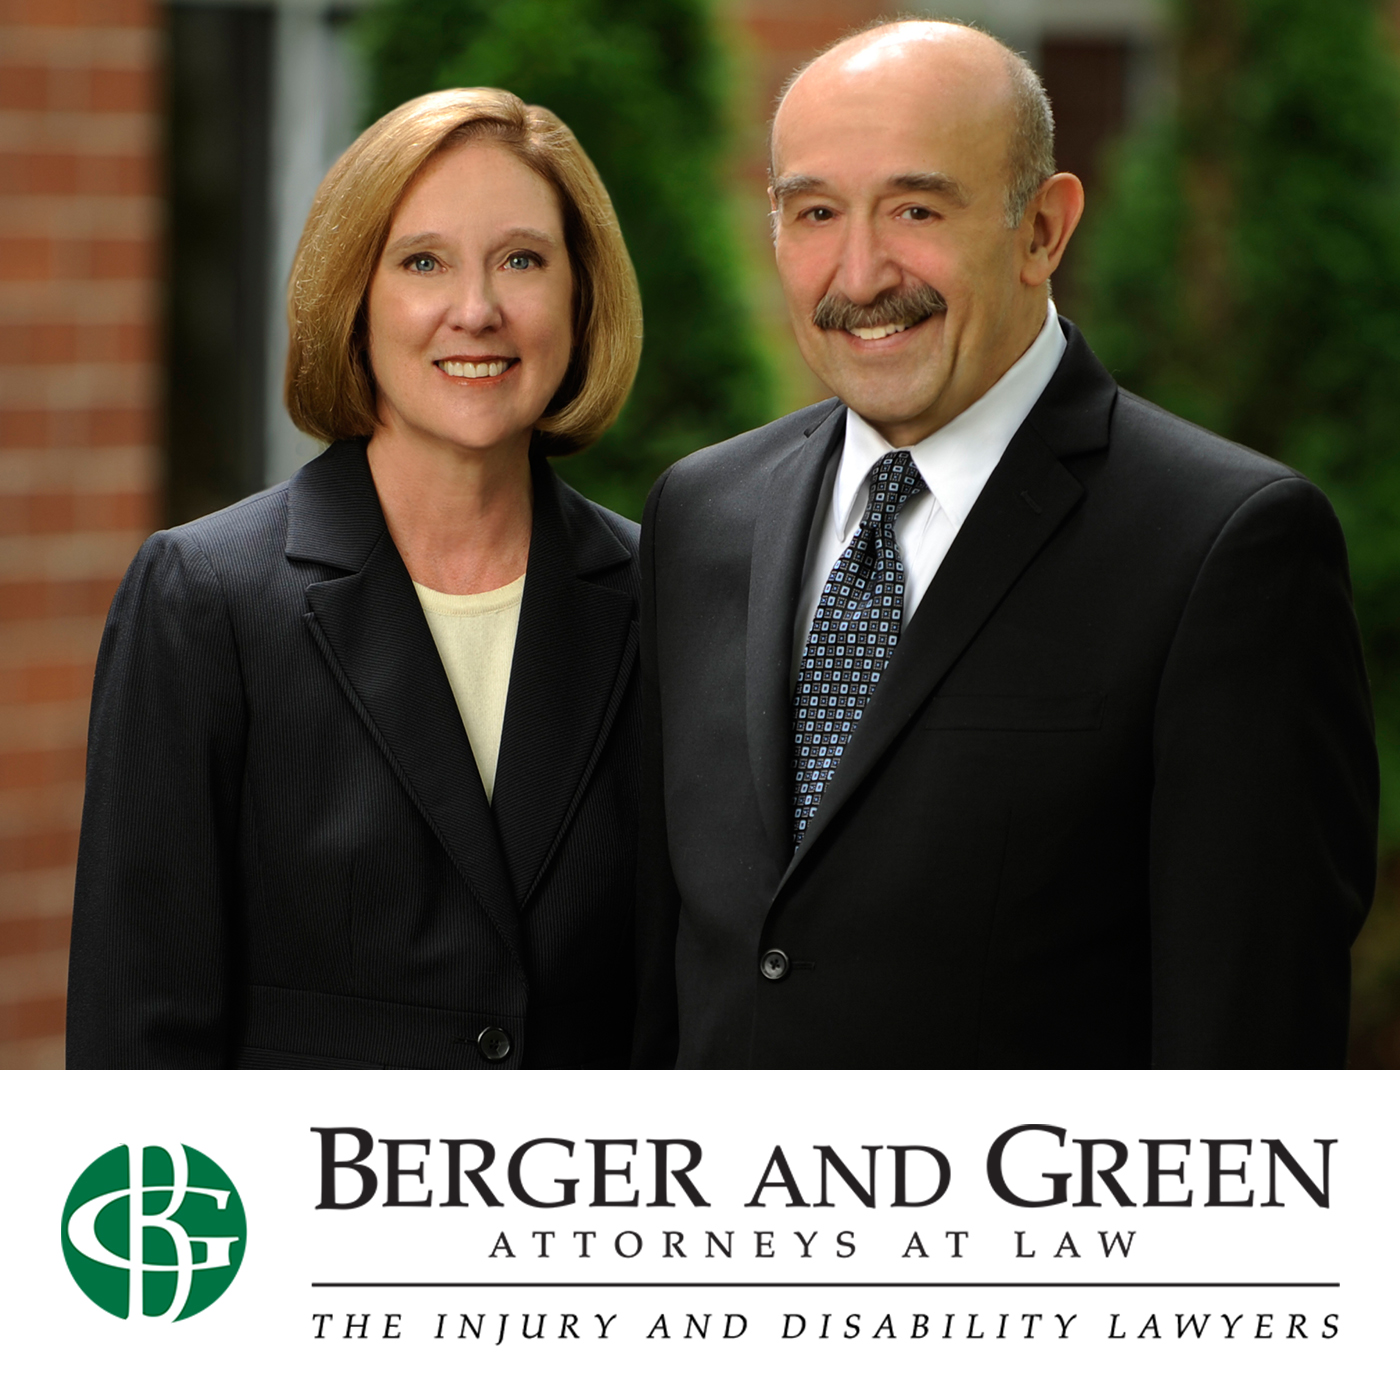 Pittsburgh Injury and Disability Lawyers Berger and Green